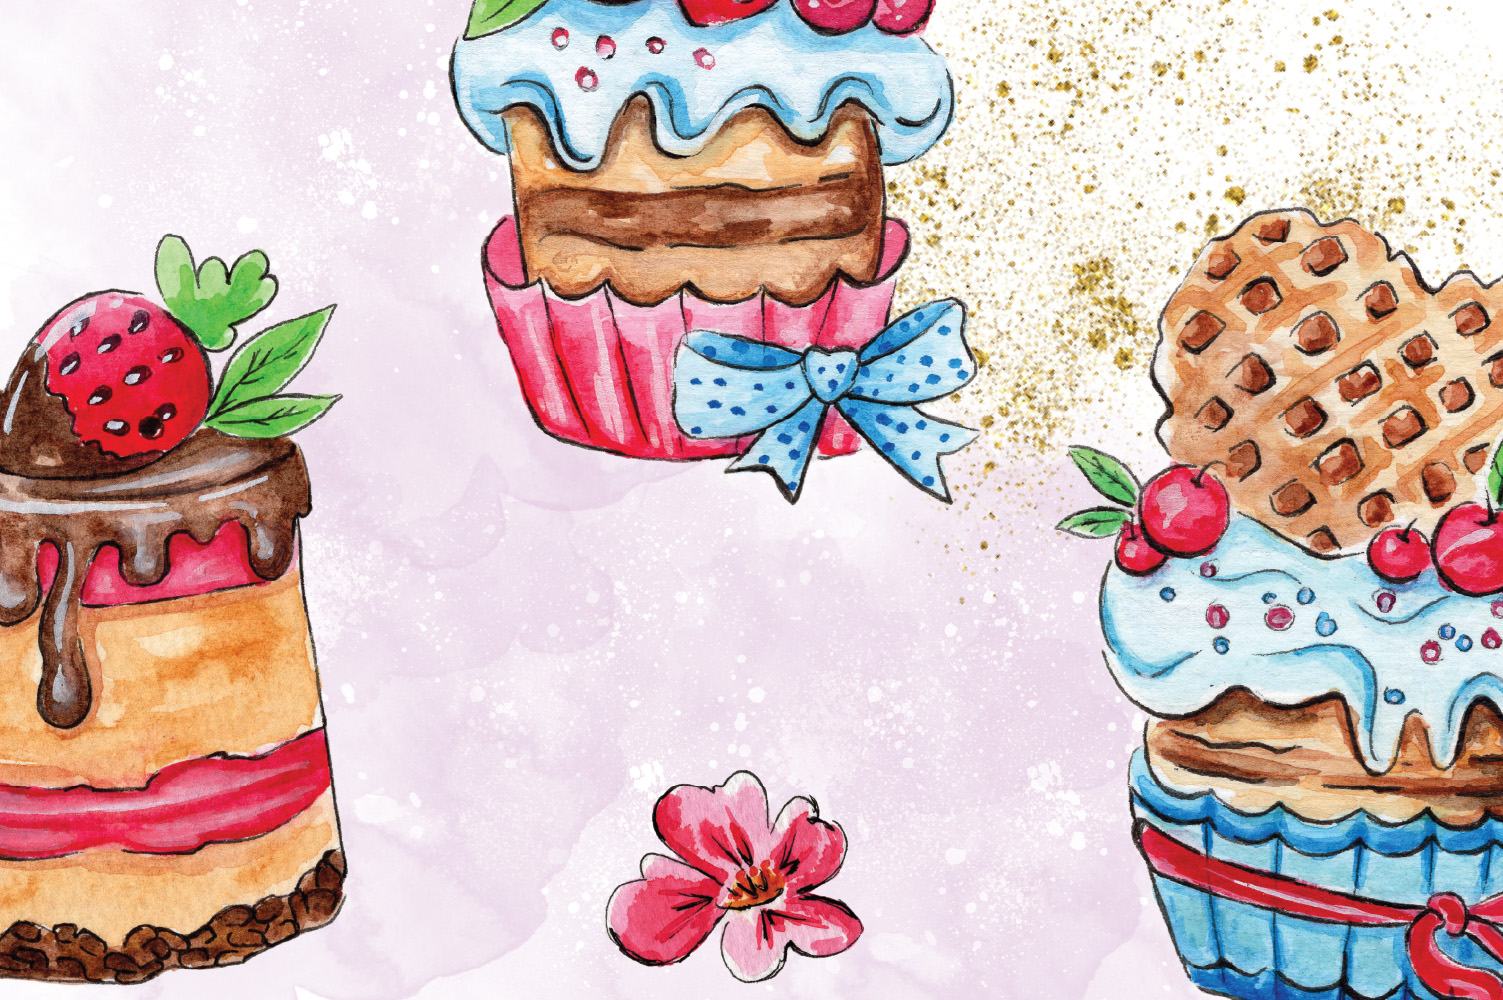 Cakes Collection Clip Art example image 2